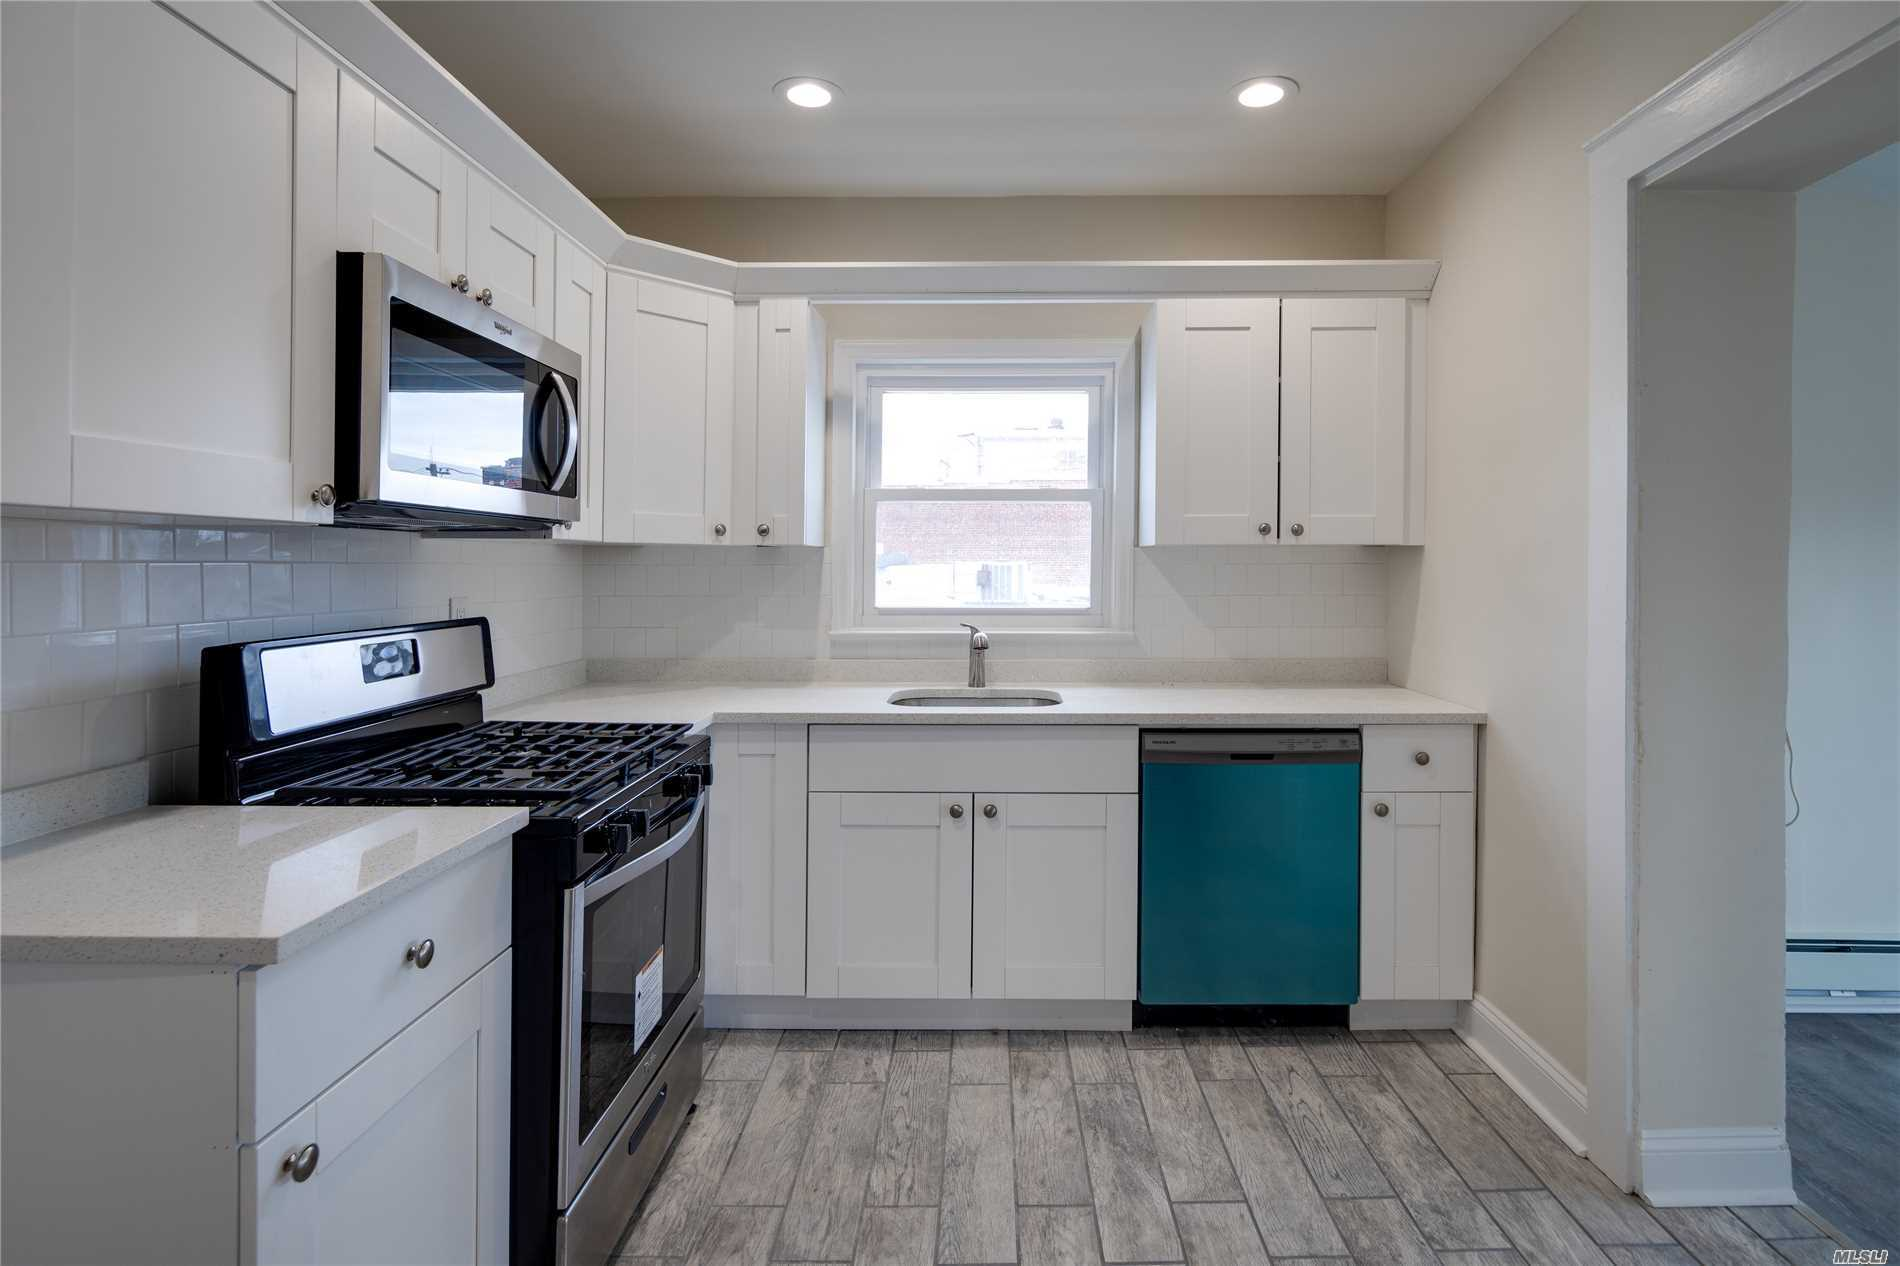 Beautiful Clean and All Brand New!Sd#14. Large Kitchen new SS Appliances + Quartz Countertop. Large Living Room. Large Dining Room 2 Bedrooms. Huge Bonus Own Washer And Dryer In Apartment. All New Windows, Plumbing, + Electric. Large Parking Lot In Rear. Walk to all - Amazing opportunity to Rent in SD#14 Immediate availability. No Pets and No smoking